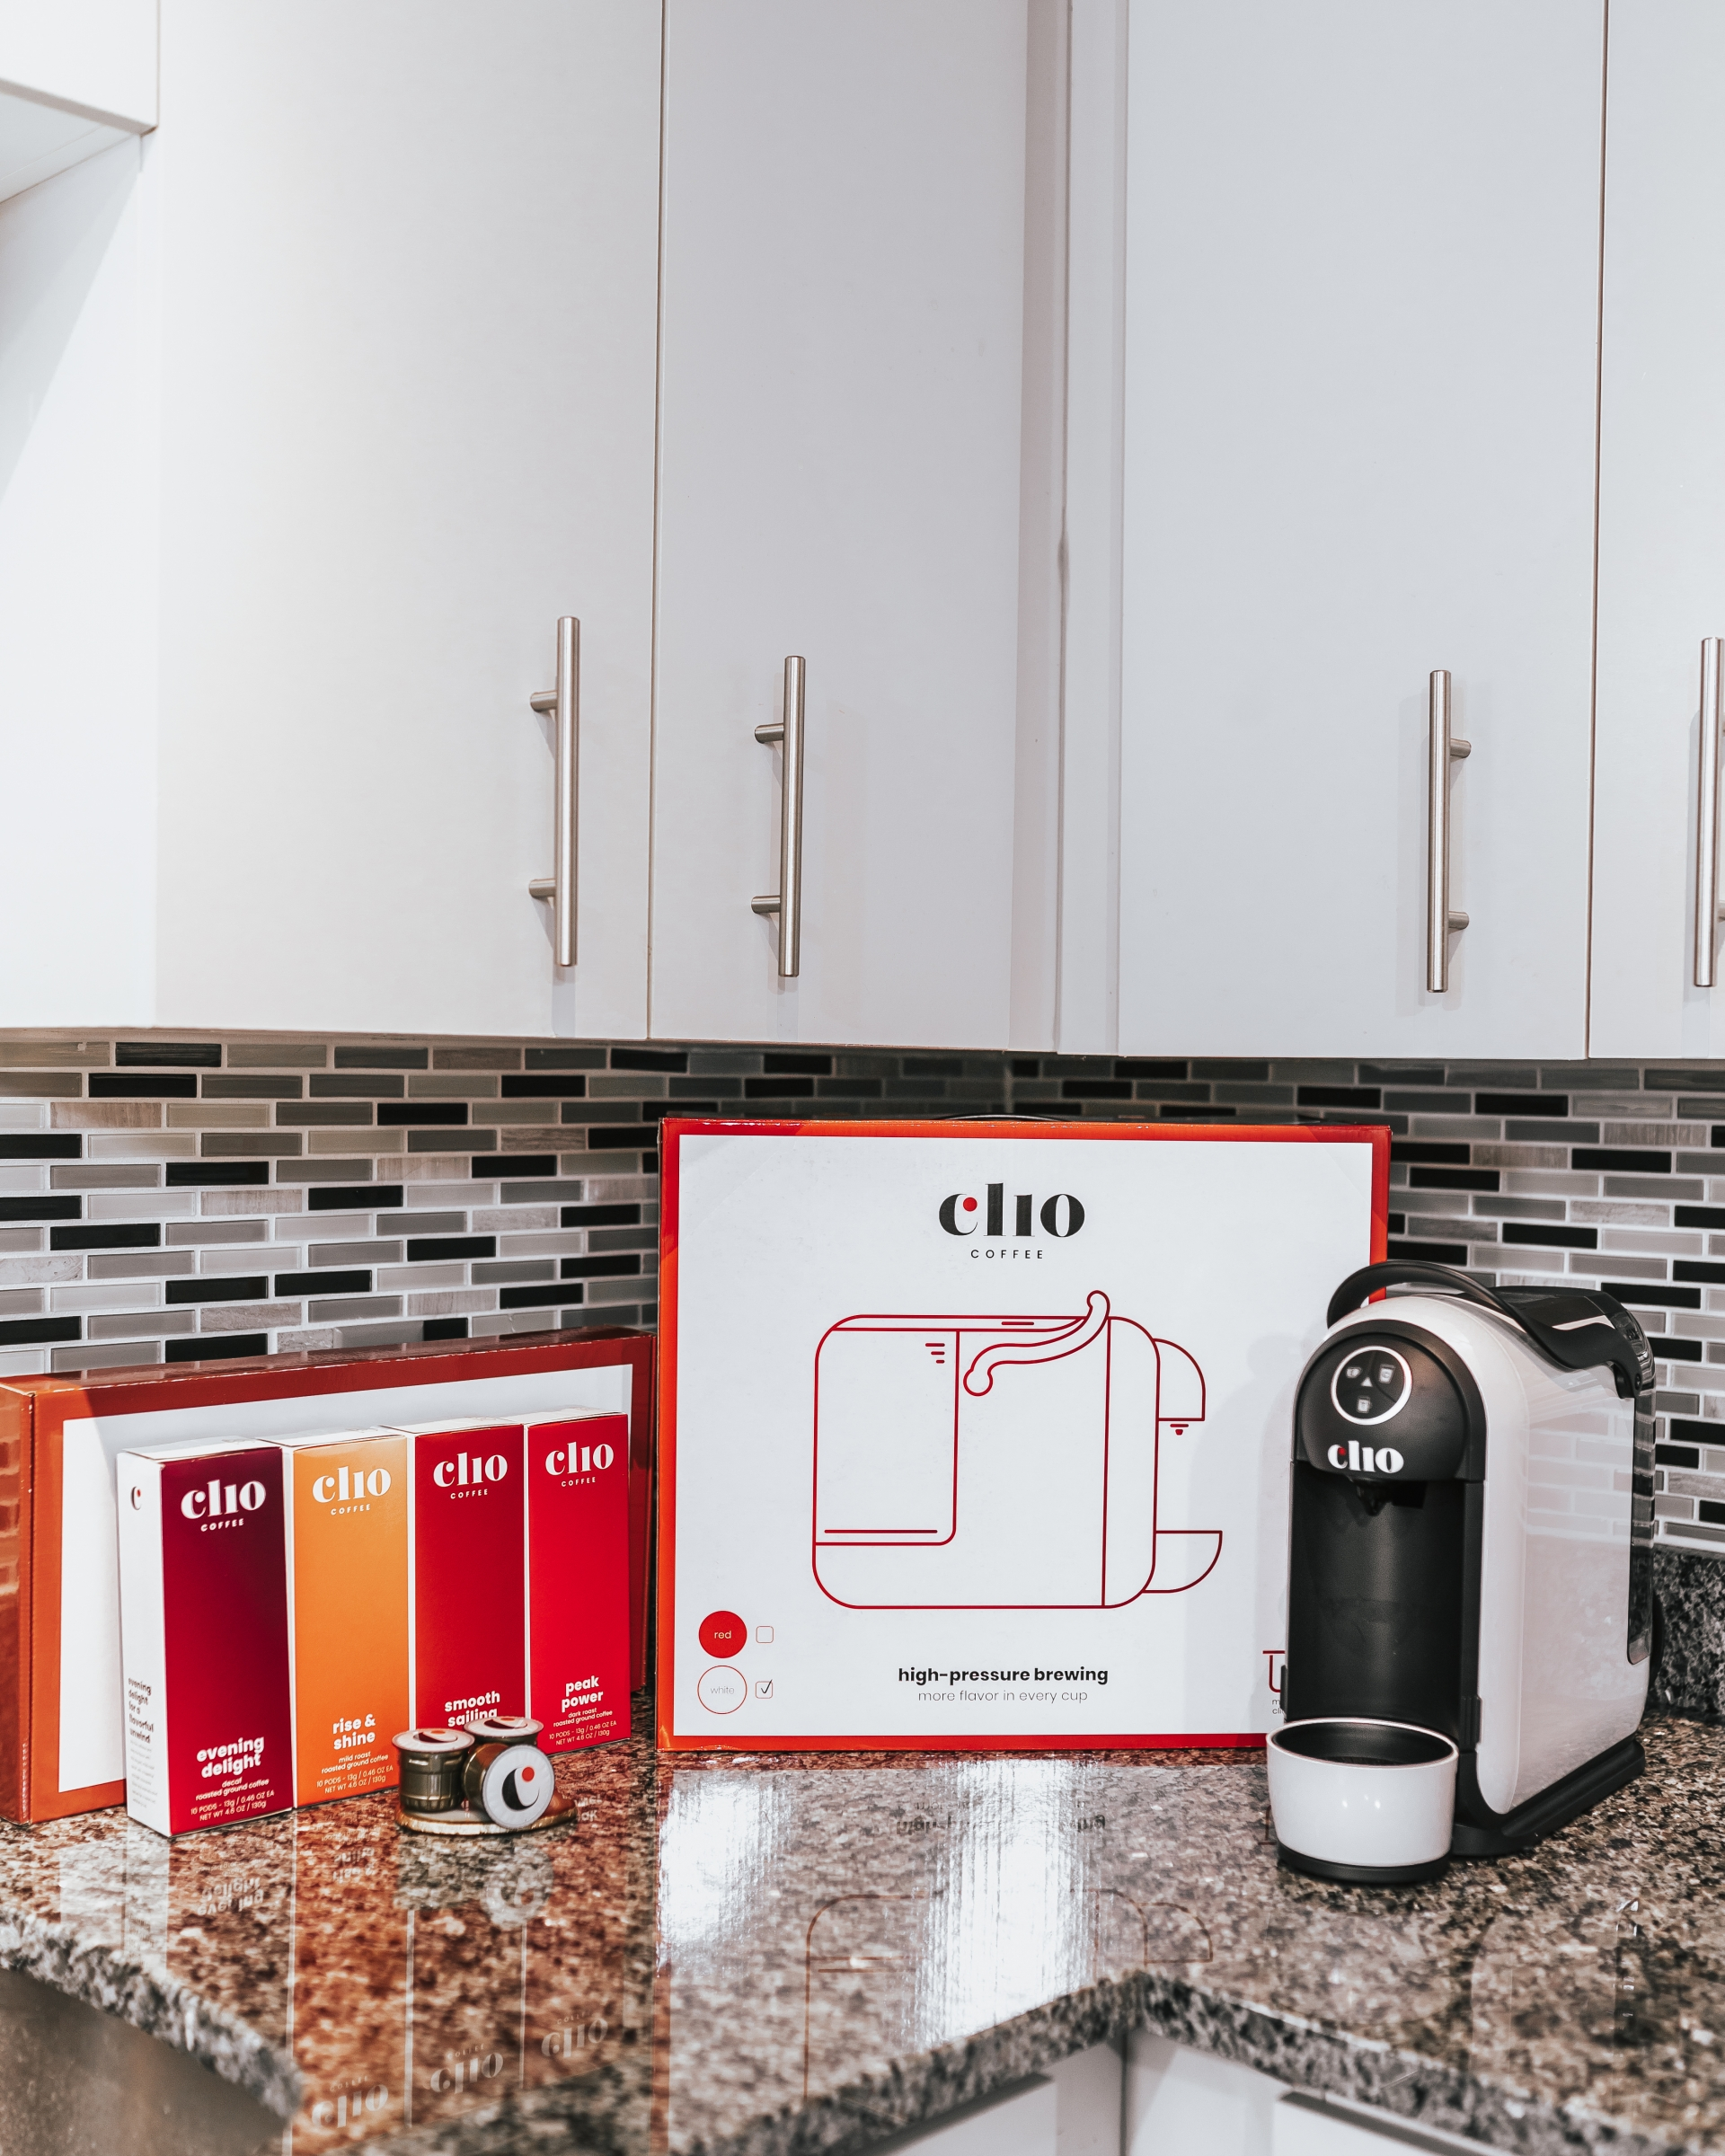 Clio Coffee Subscription Based Coffee System Coffee Machine Coffee Pods Single Serve Coffee Machine Keurig K-cup single cup brew k pods coffee maker coffee brewer coffee blends iced coffee at home espresso americano iced latte